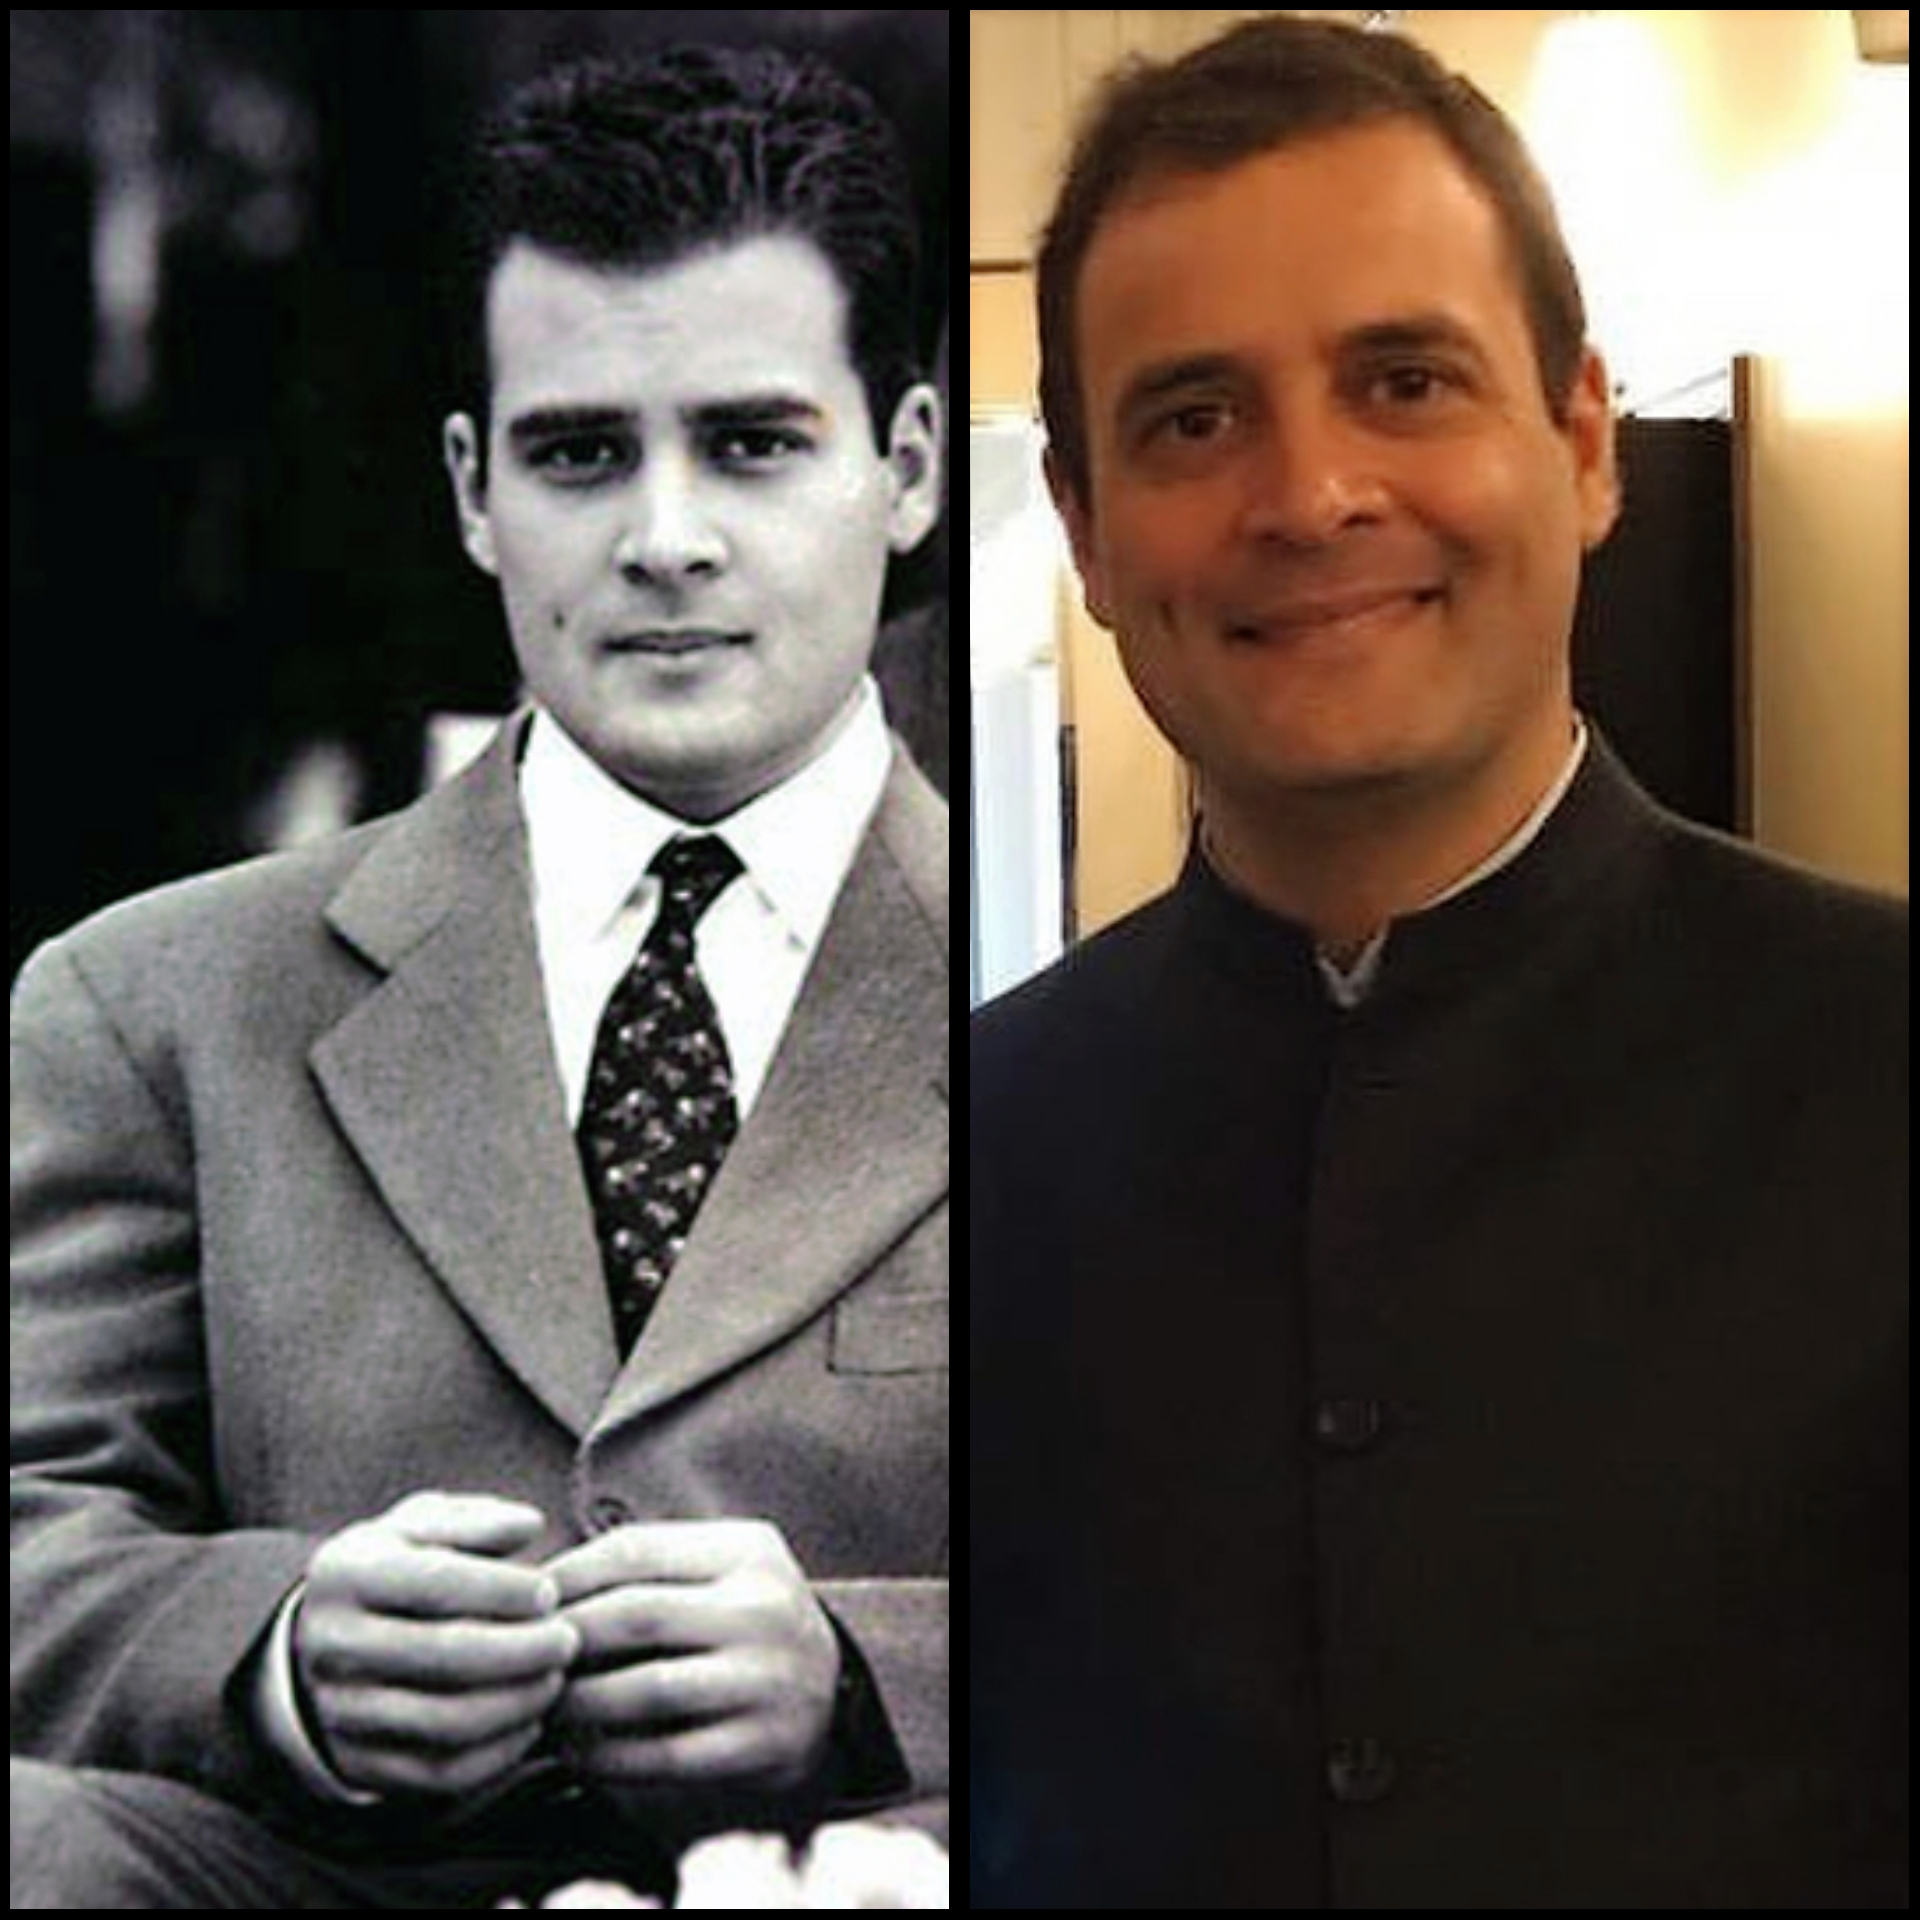 rahul gandhi, Indian Politicians, politics, unseen pictures, rare pictures,vintage pictures of Indian Politicians